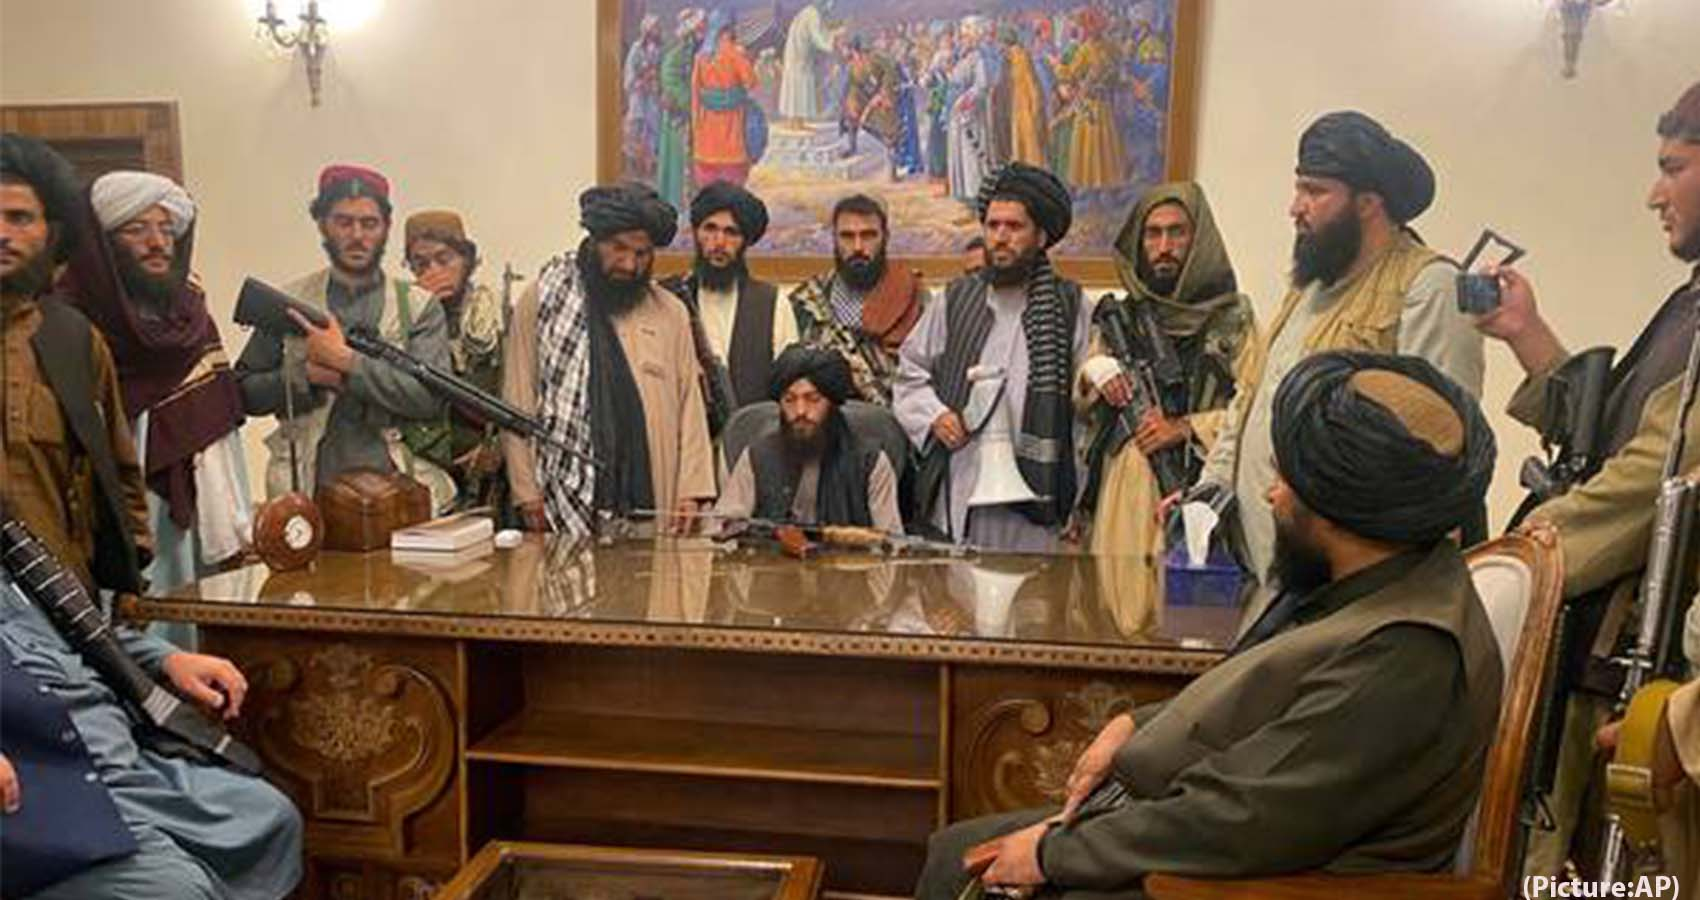 Taliban Captures Power In Afghanistan As US Withdraws Troops  Thousands Await Evacuation From Afghanistan, While Biden Criticized For Chaos, Violence, Fear and Defeat In America's Longest War In History